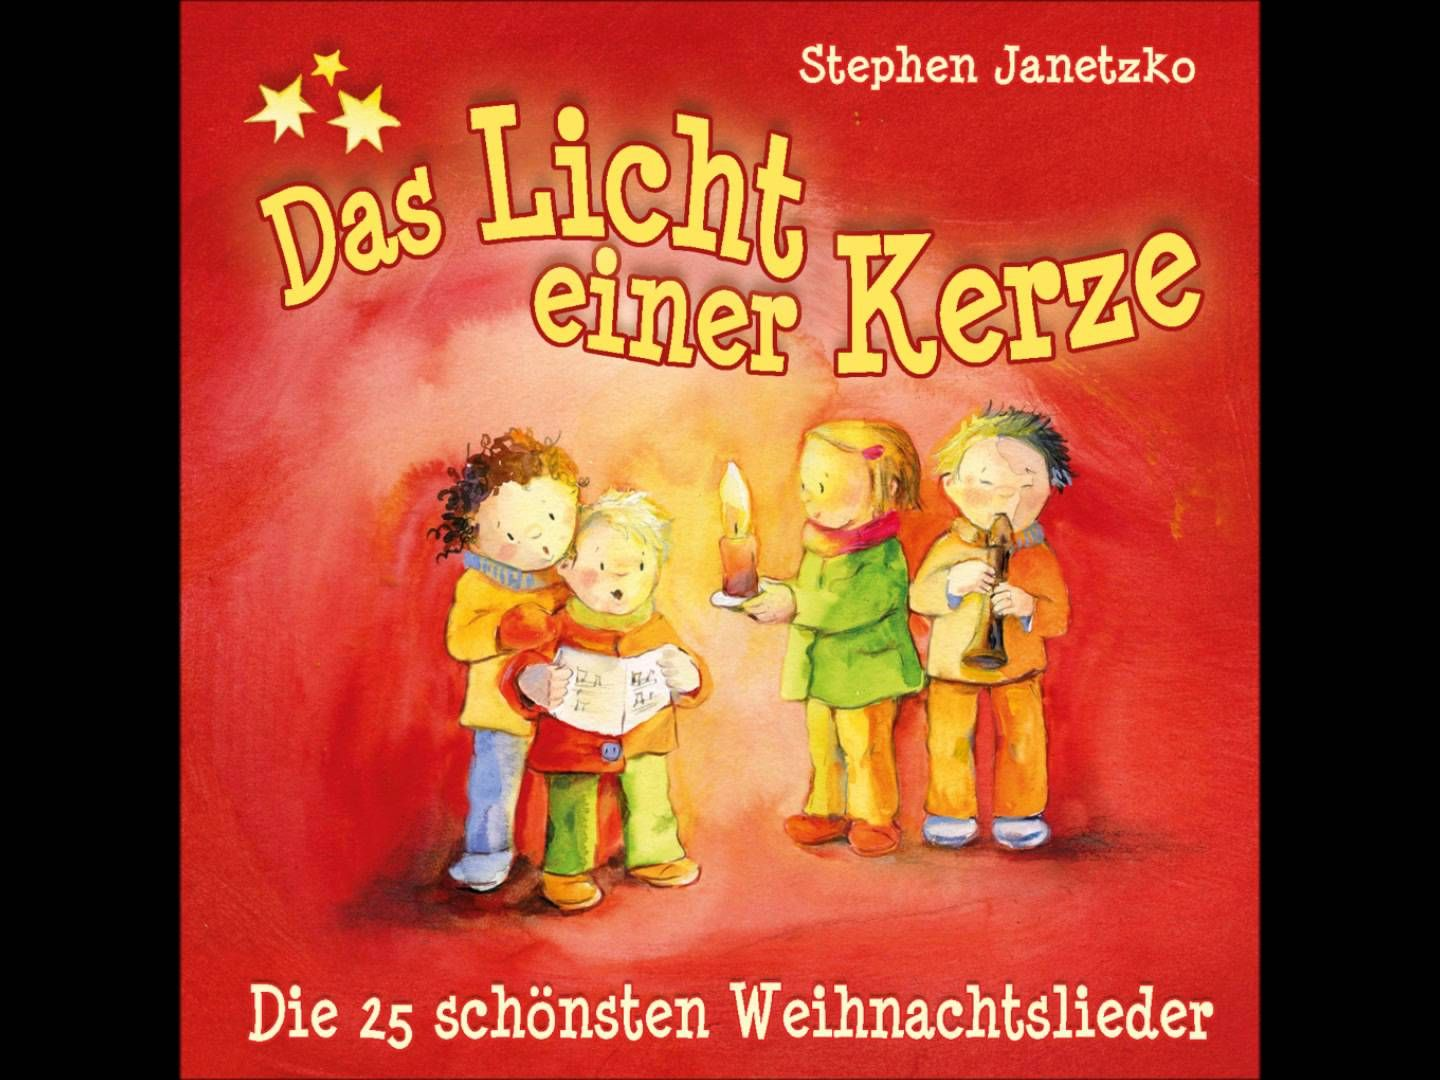 Stephen Janetzko - Das Licht einer Kerze - ADVENTSLIED | Music at ...